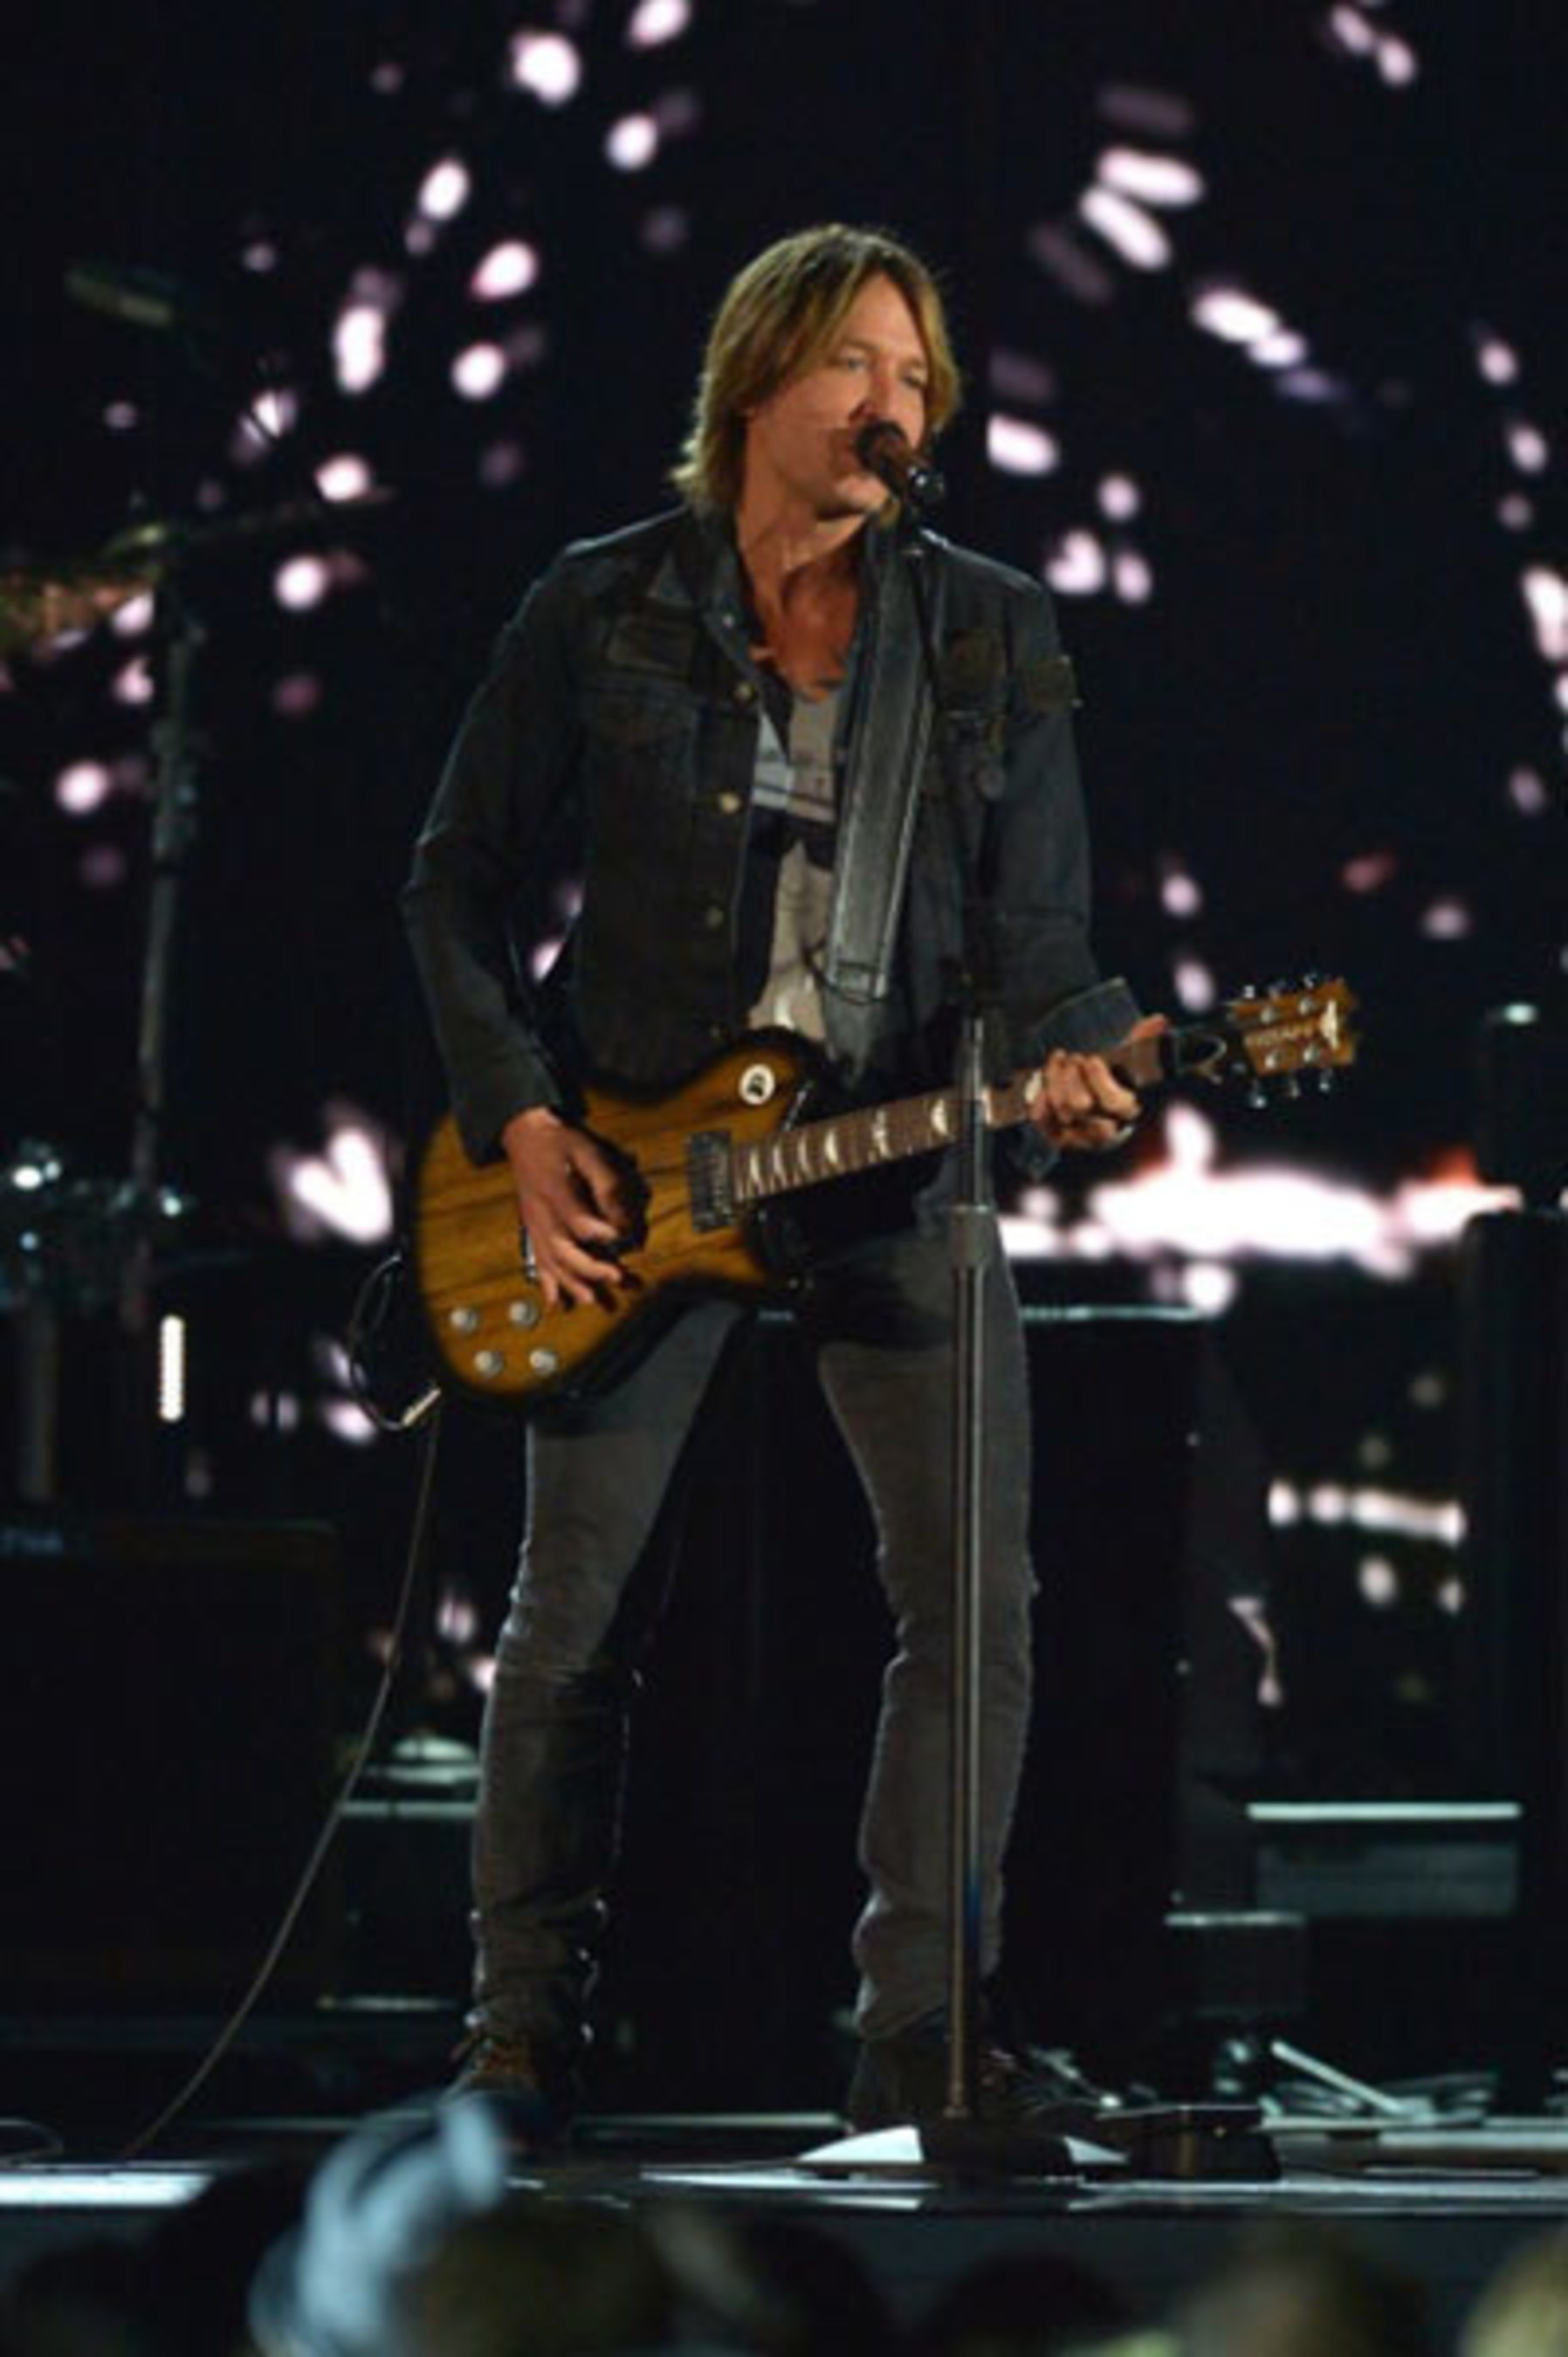 """Keith Urban rocks the CMA's with his """"Night Star"""" URBAN(TM) Guitar, debuting November 15th exclusively on HSN and HSN.com!"""